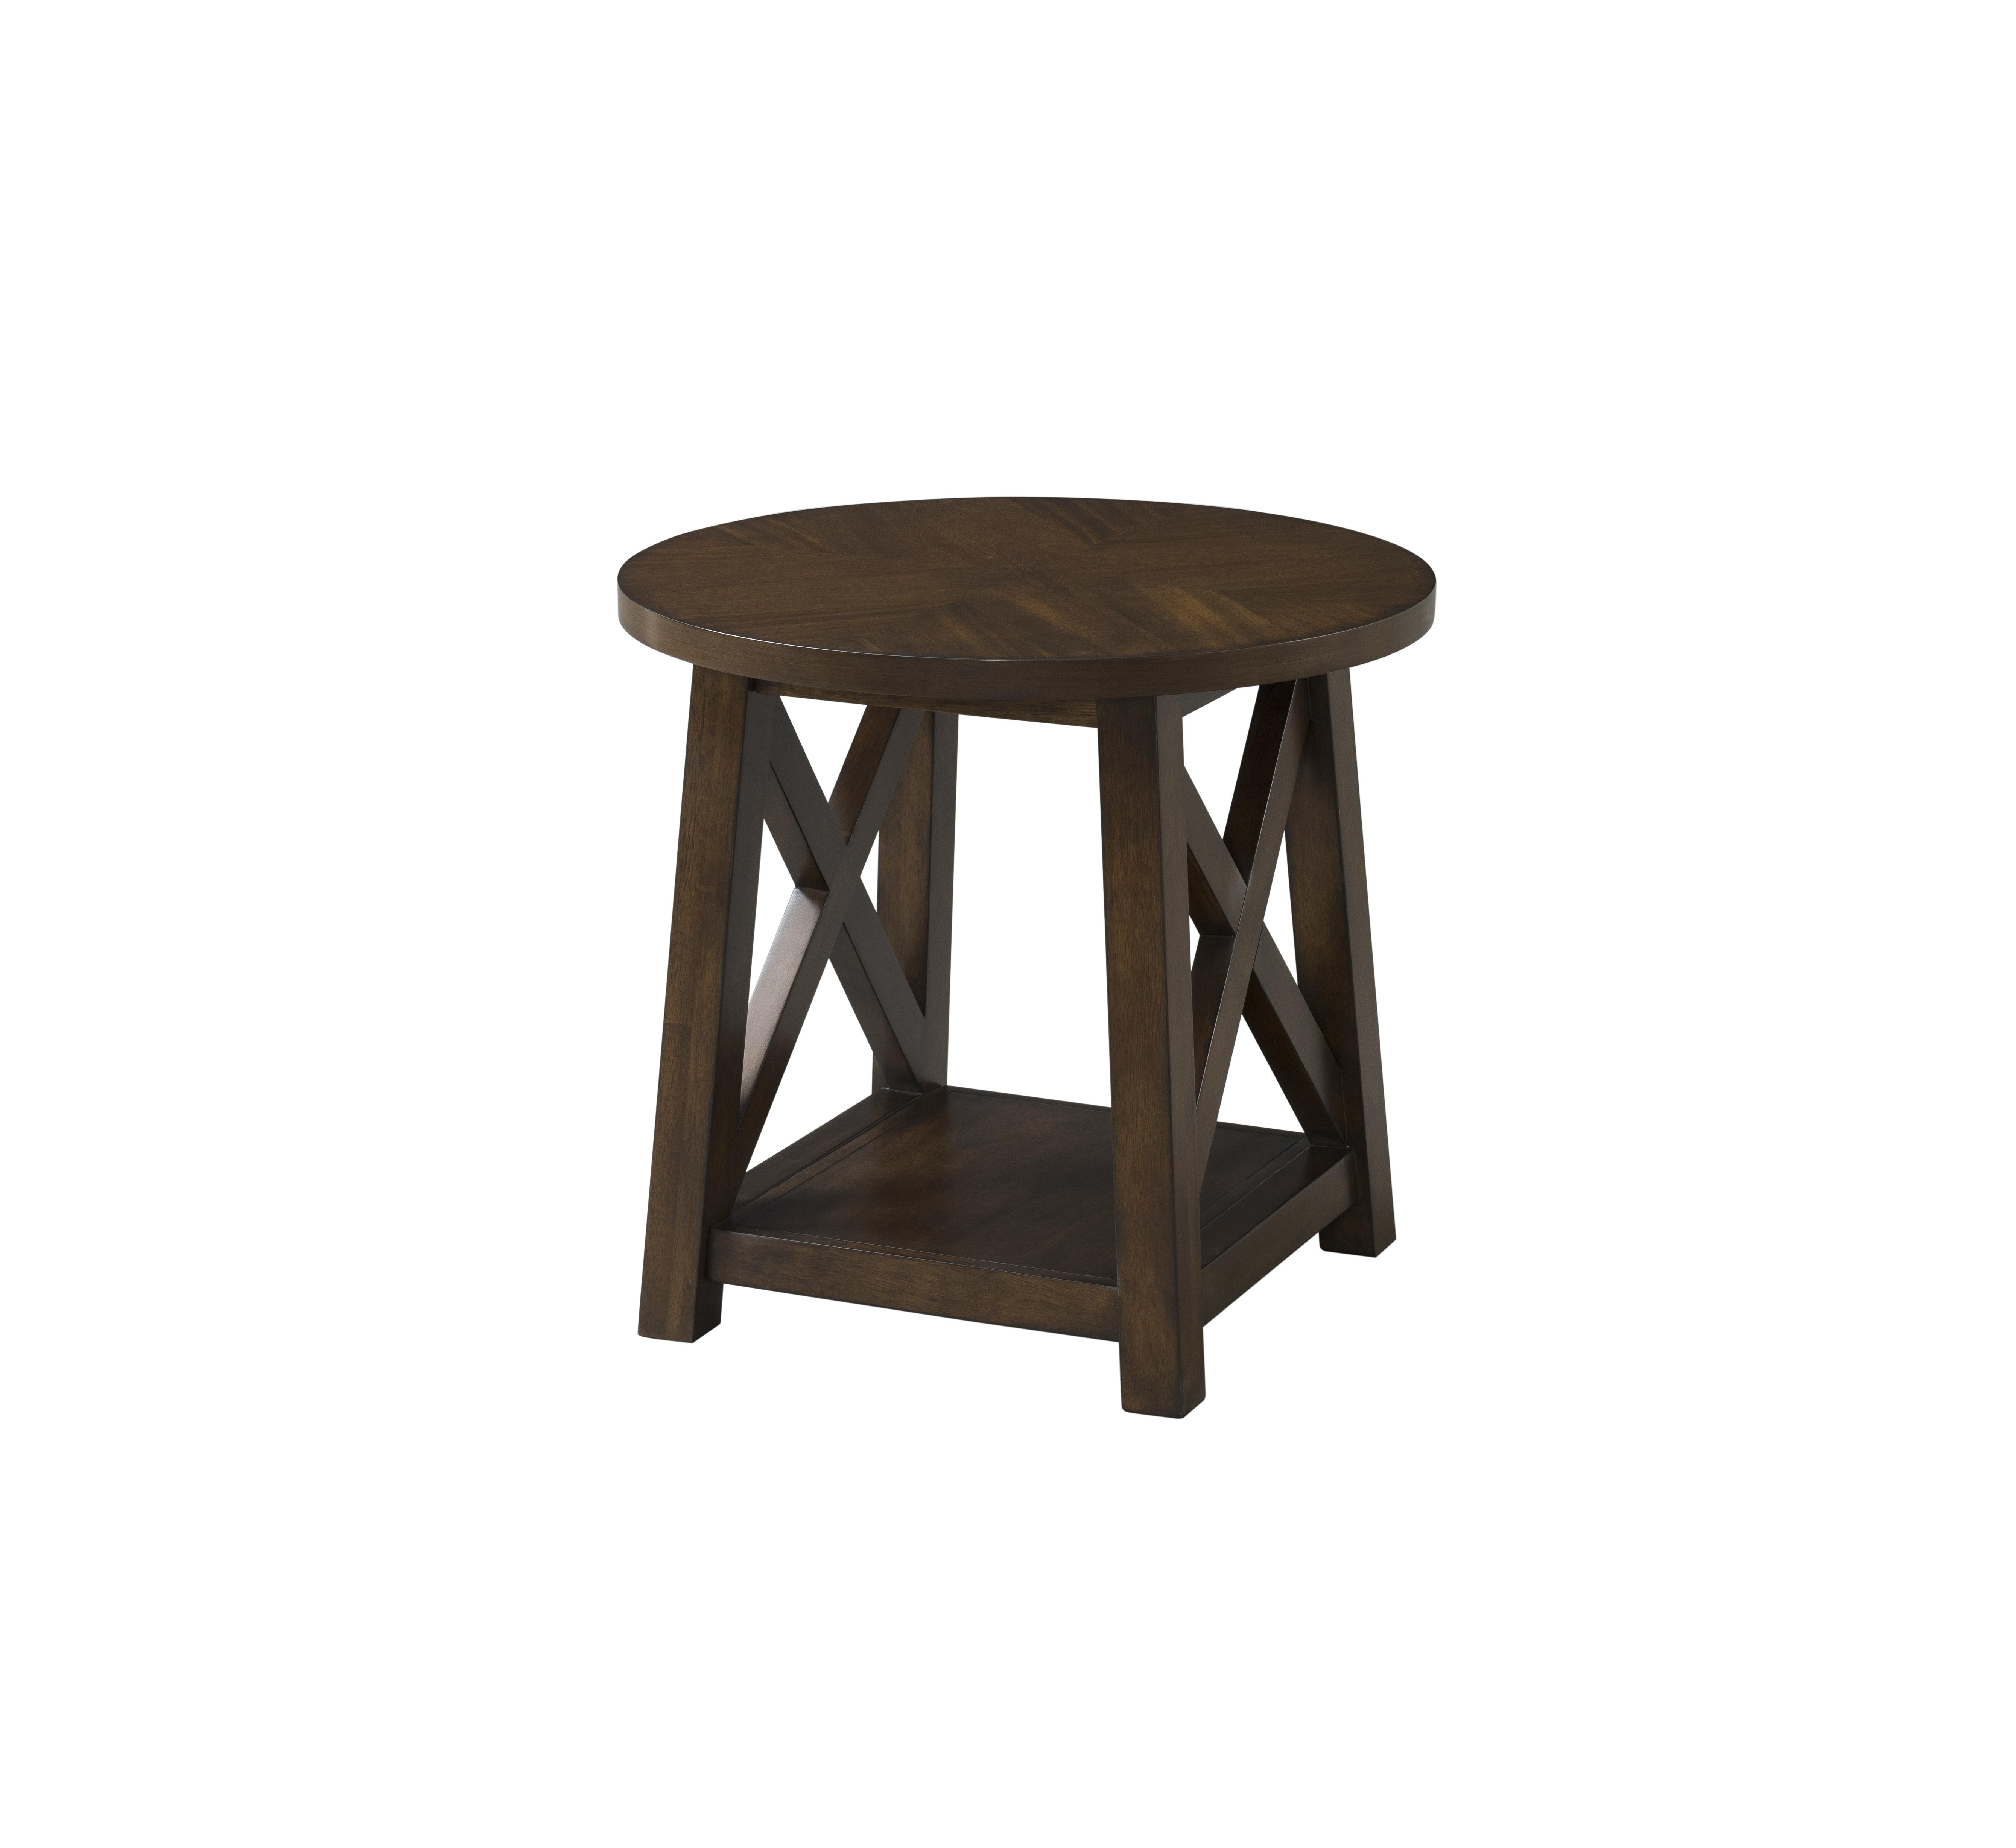 lane furniture brown cherry round end table the classy home lnf click enlarge gray trunk coffee liberty collections marble and glass marion ashley leons floor lamps mainstays